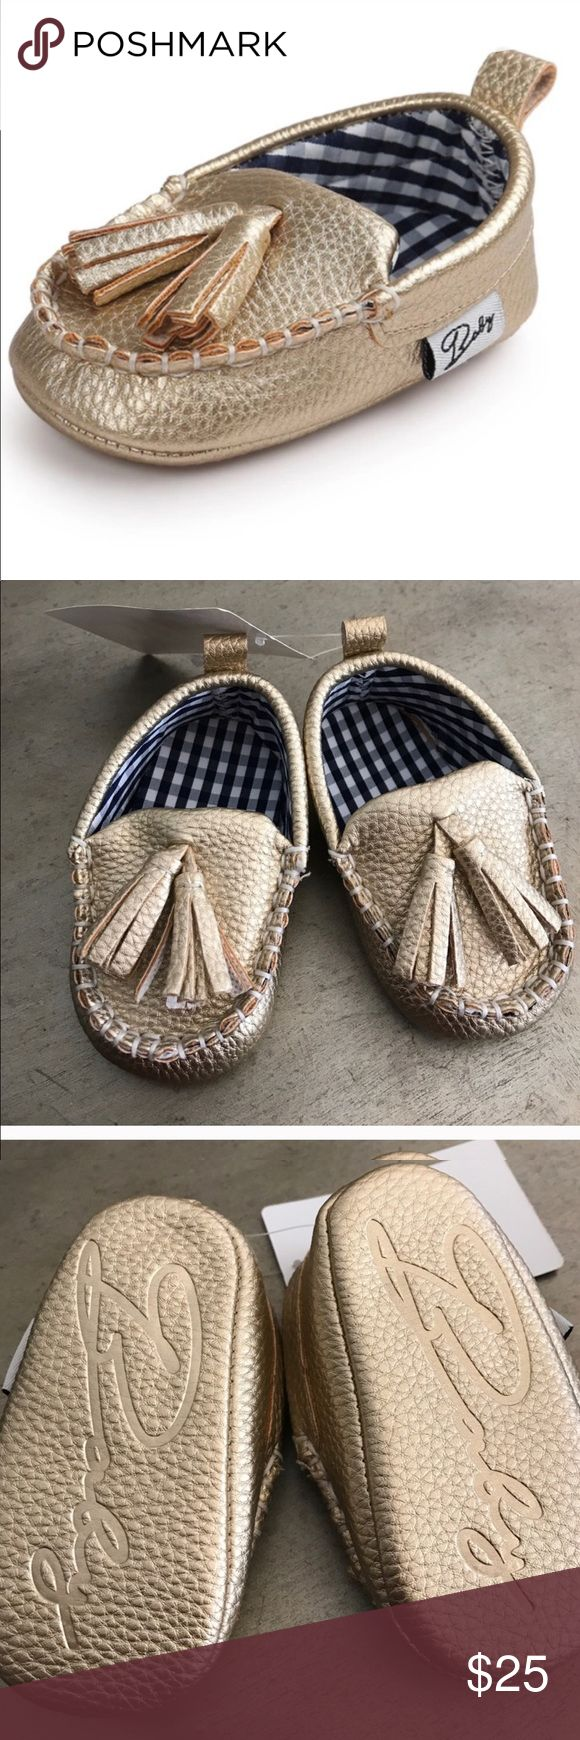 Gold baby moccasins nwt Adorable gold baby shoes! Brand new. Cute for both boys and girls. For baby's 0 to 6 months Shoes Moccasins